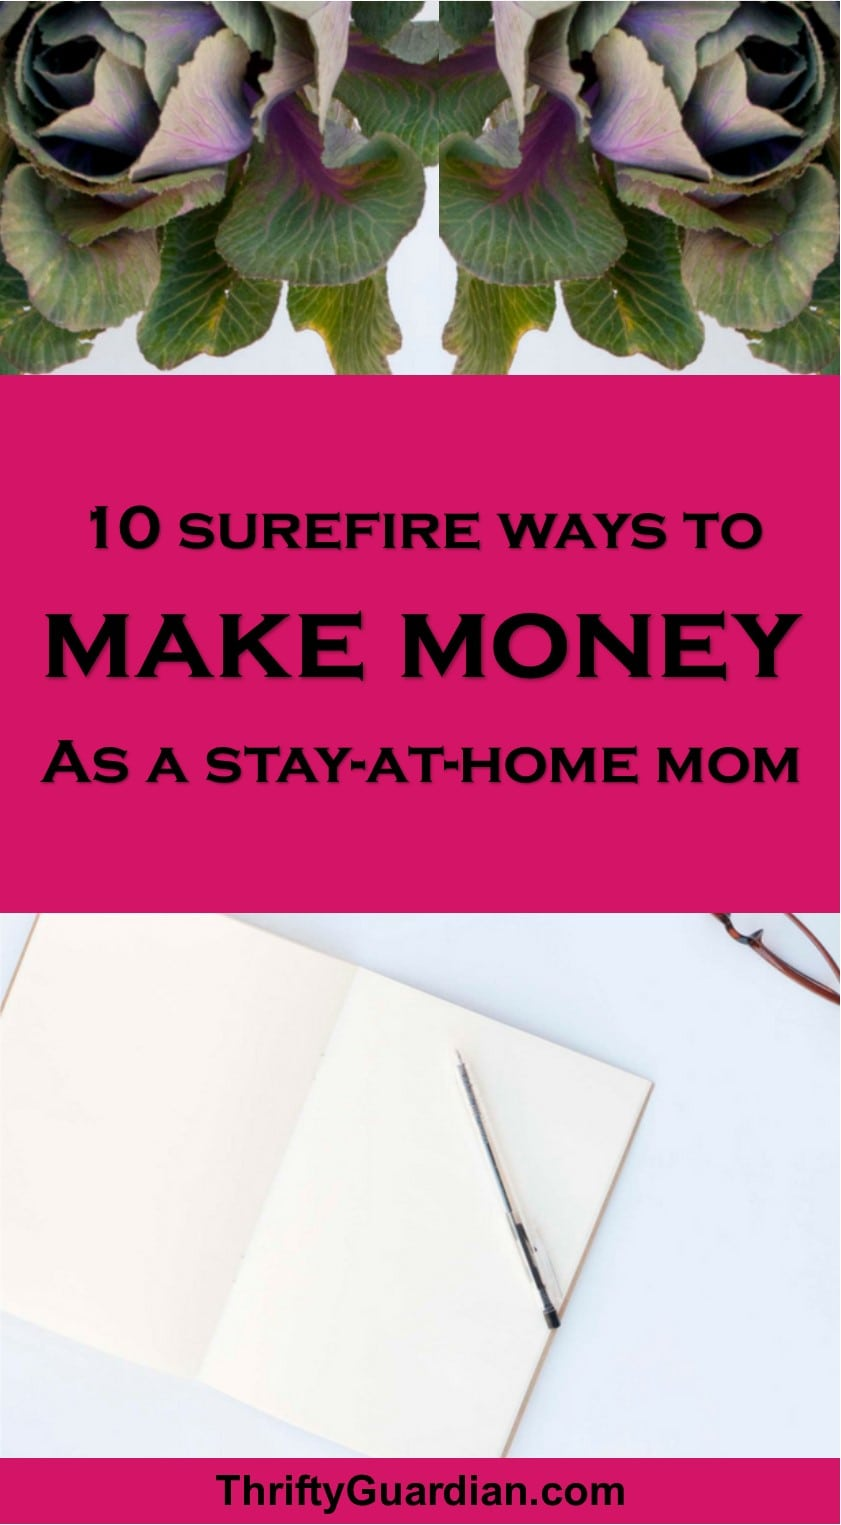 Make money as a stay at home mom with these top ten tips!